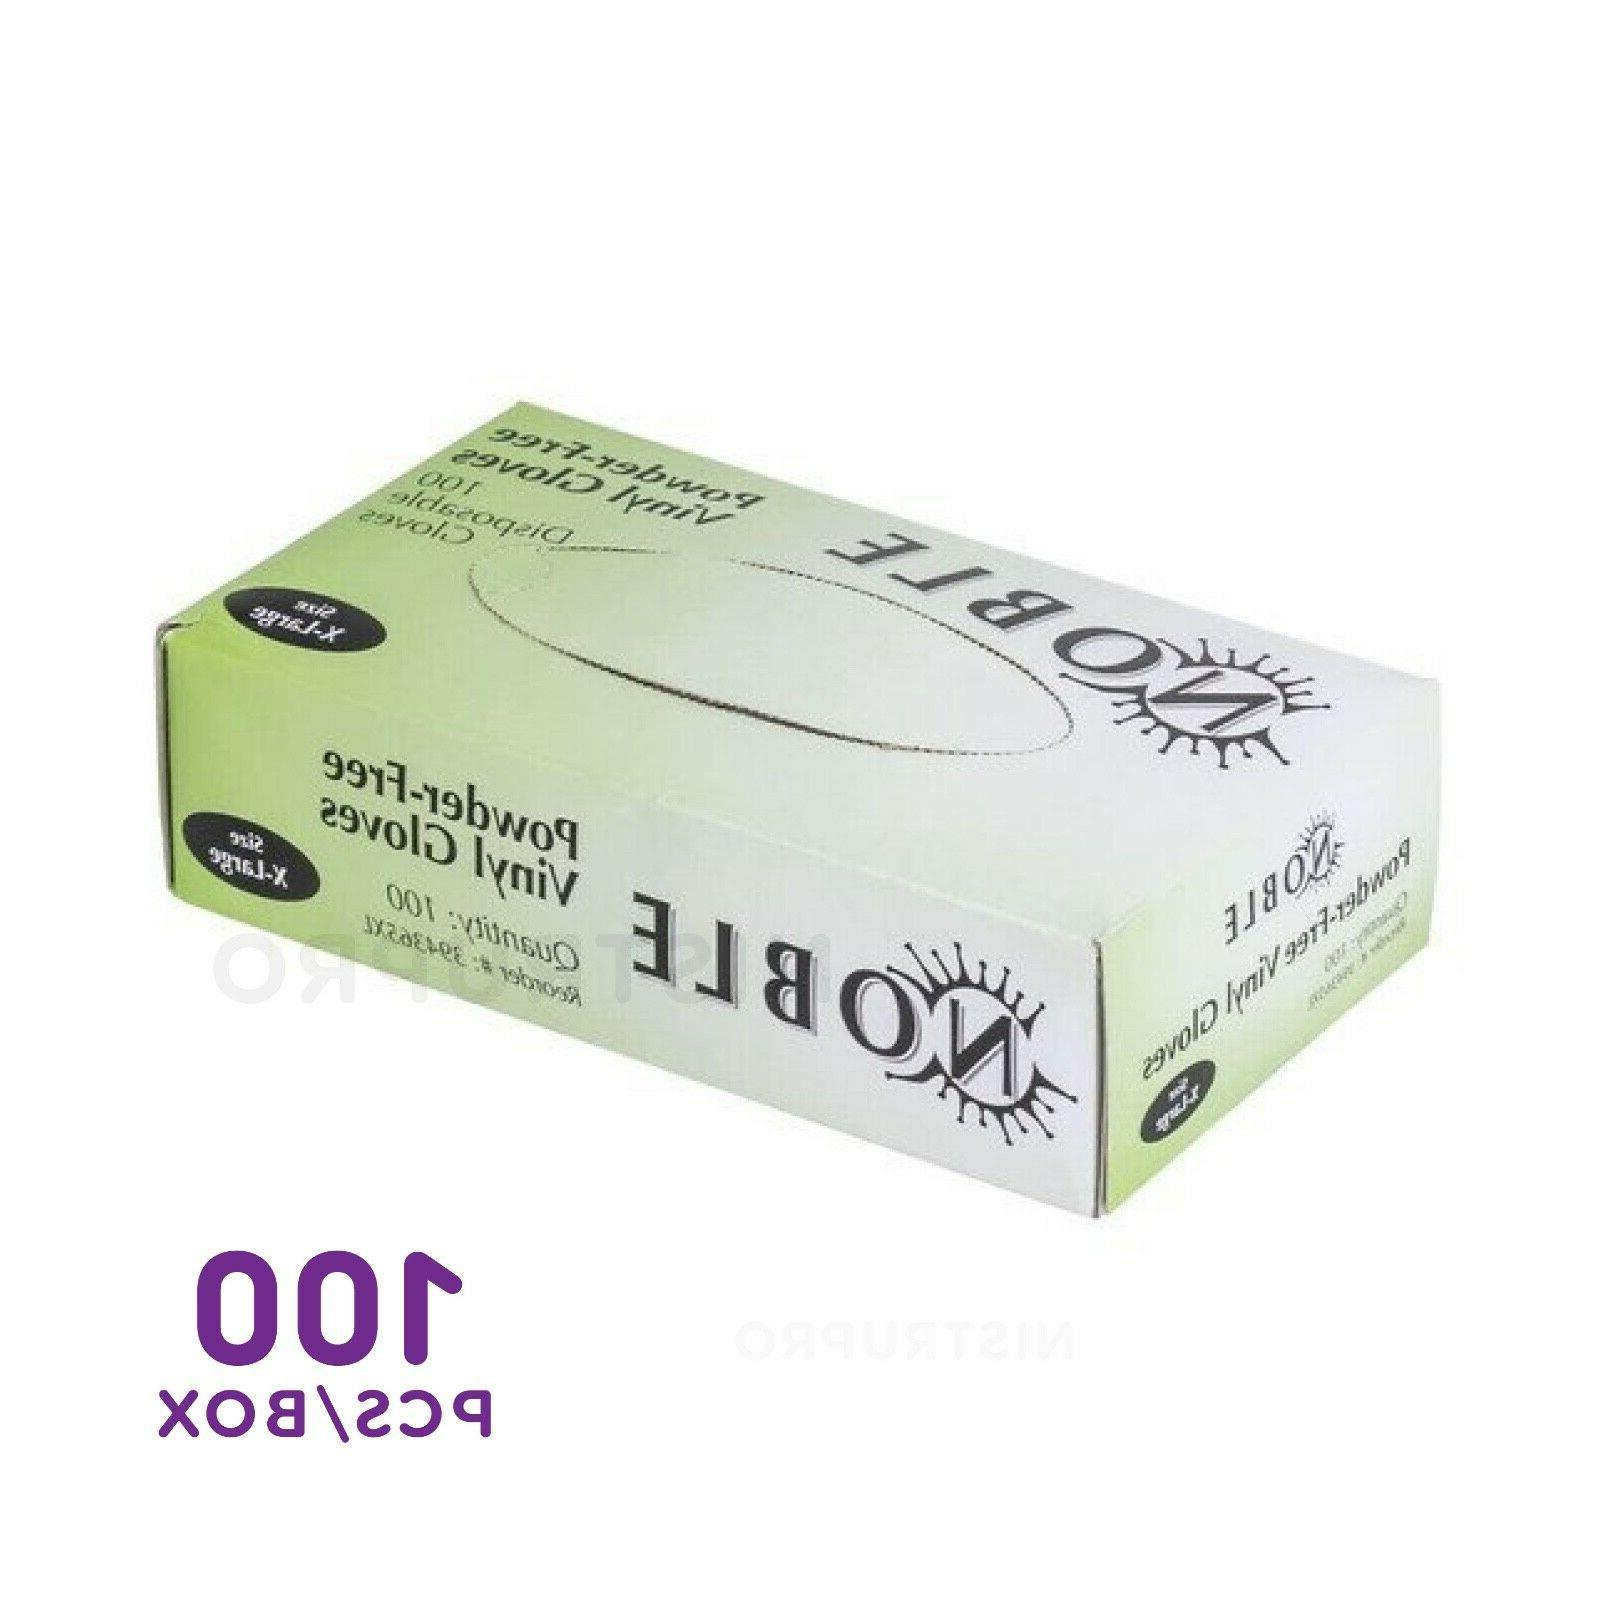 100 PCS BOX Latex-Free VINYL GLOVES MEDIUM, EXTRA